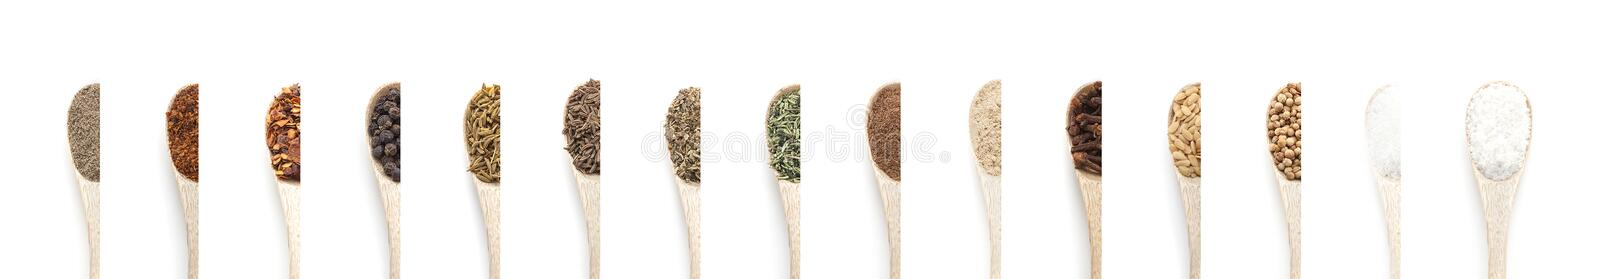 Spices in spoons isolated on white background. Top view. royalty free stock photography